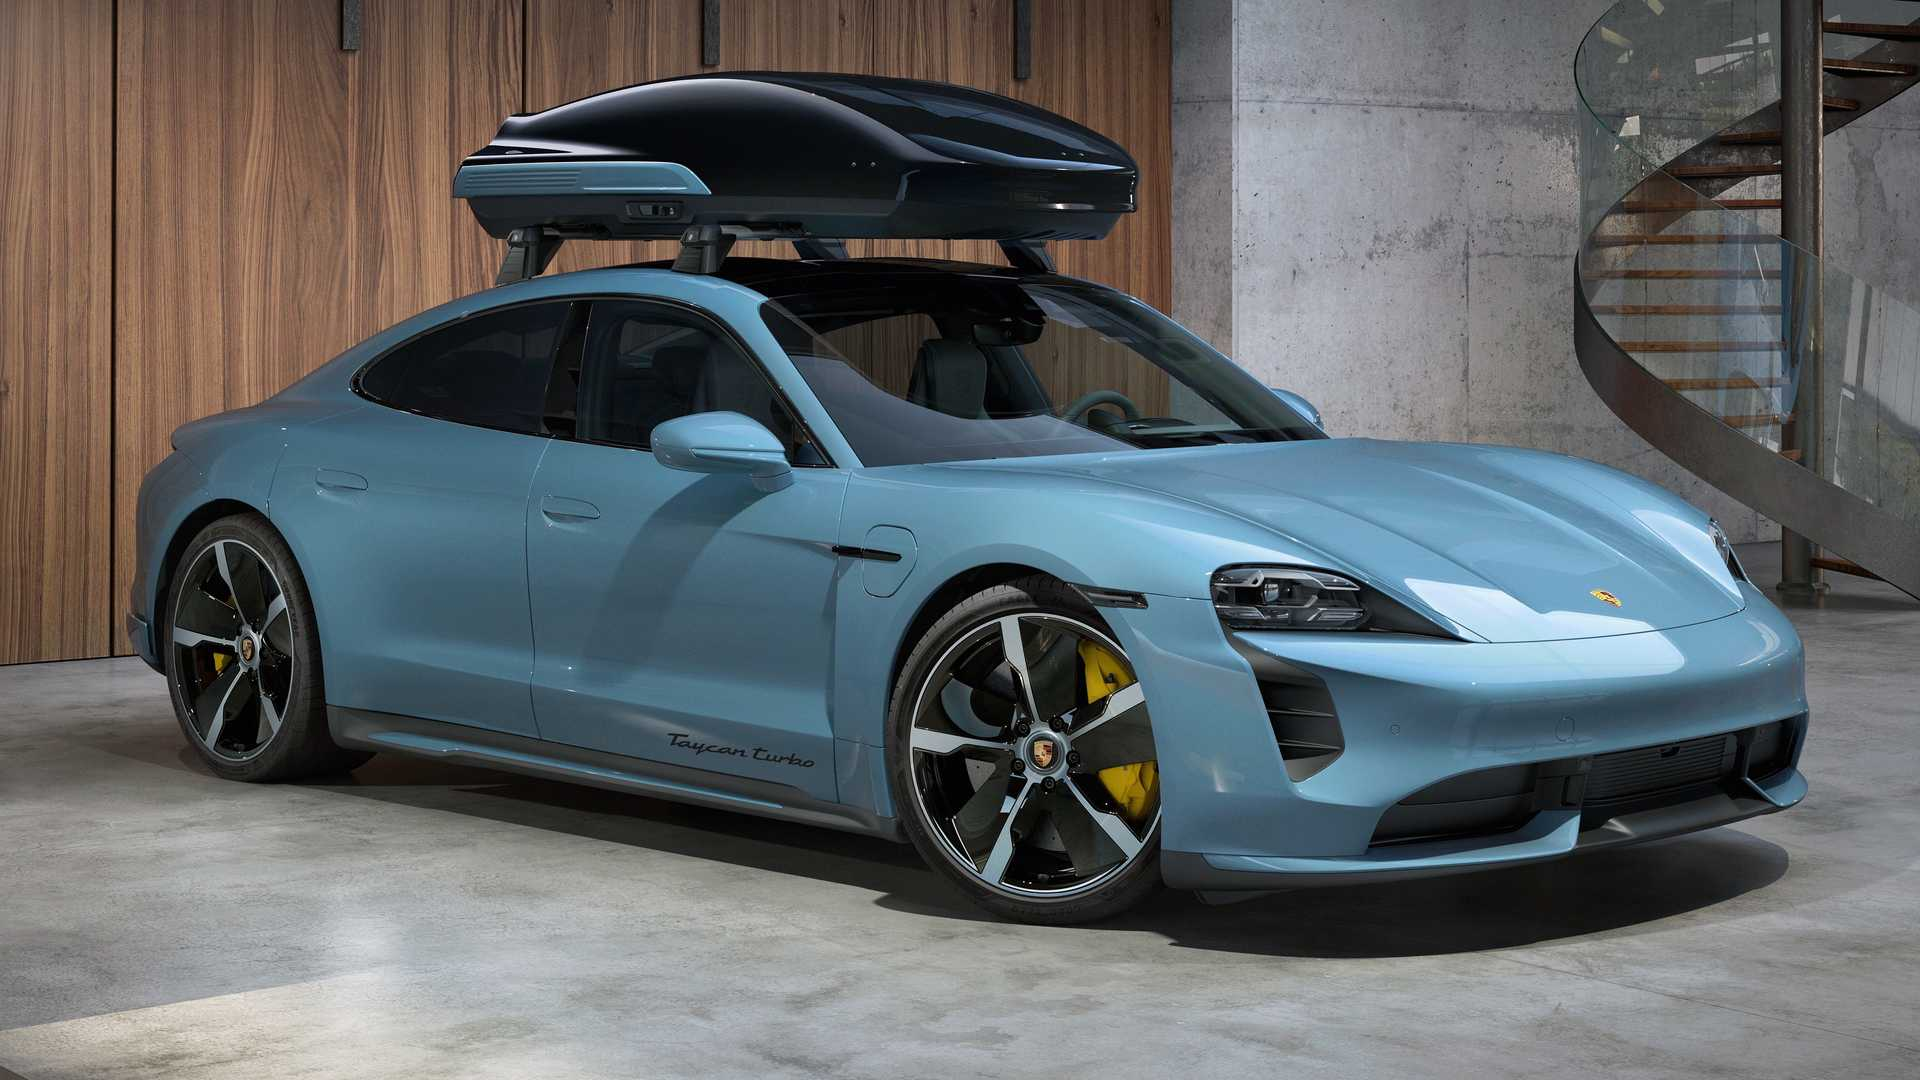 New Porsche Roof Box Can Withstand Speeds Of Up To 124 MPH